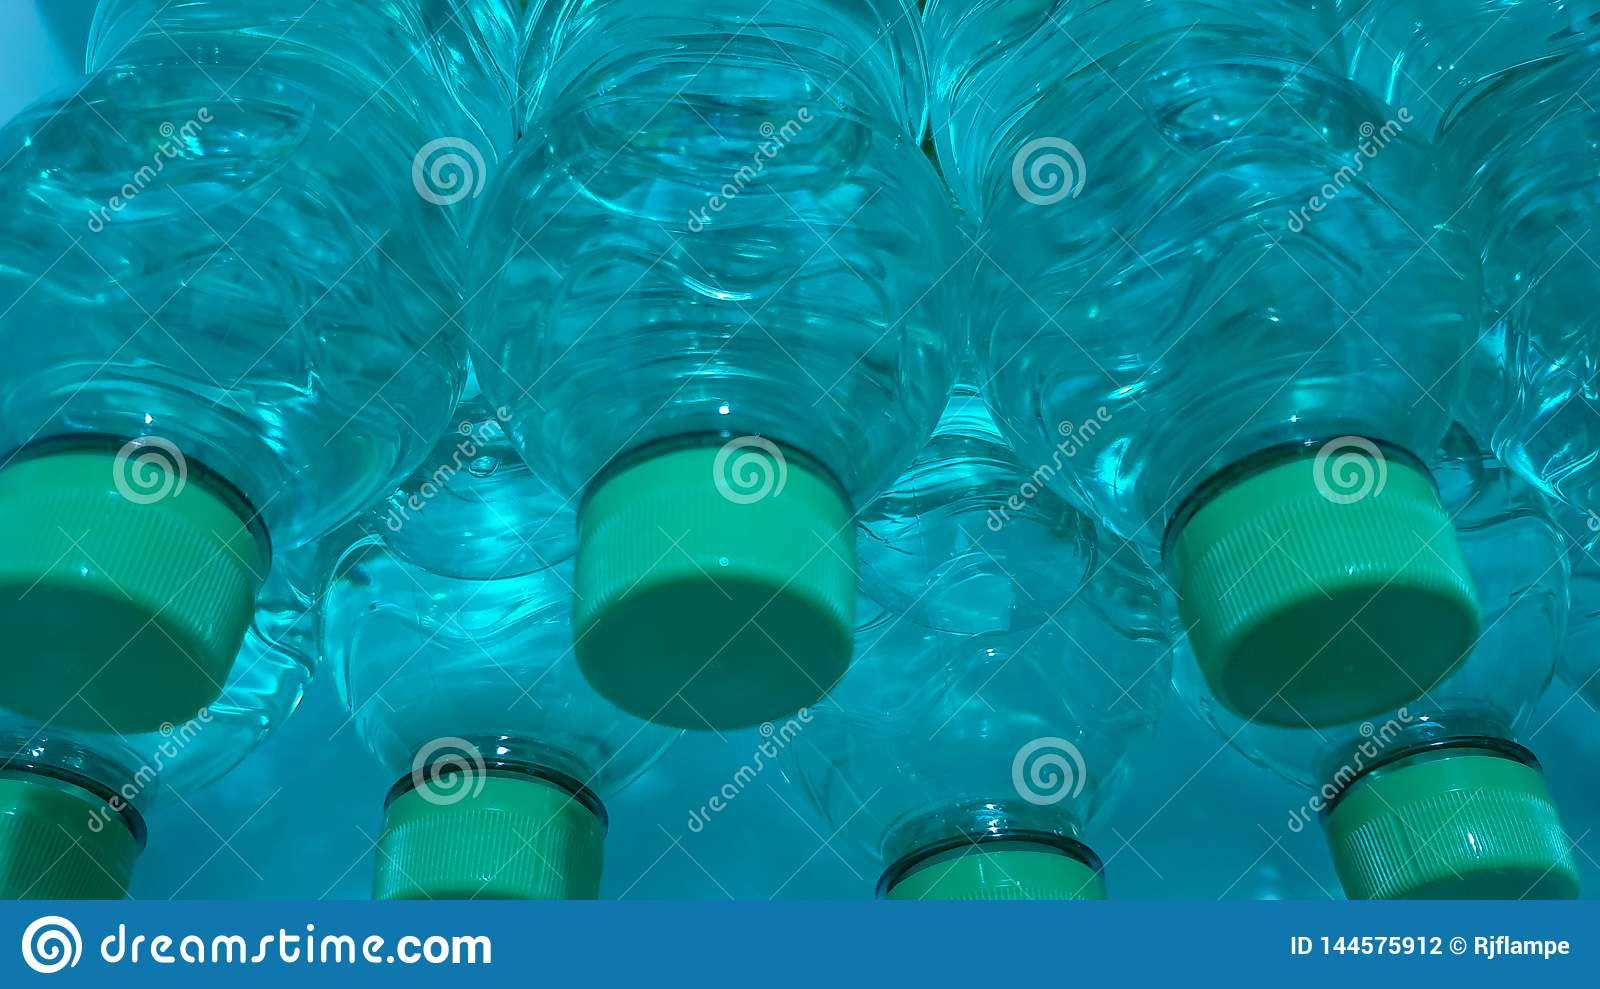 Plastic recyclable water bottles closeup